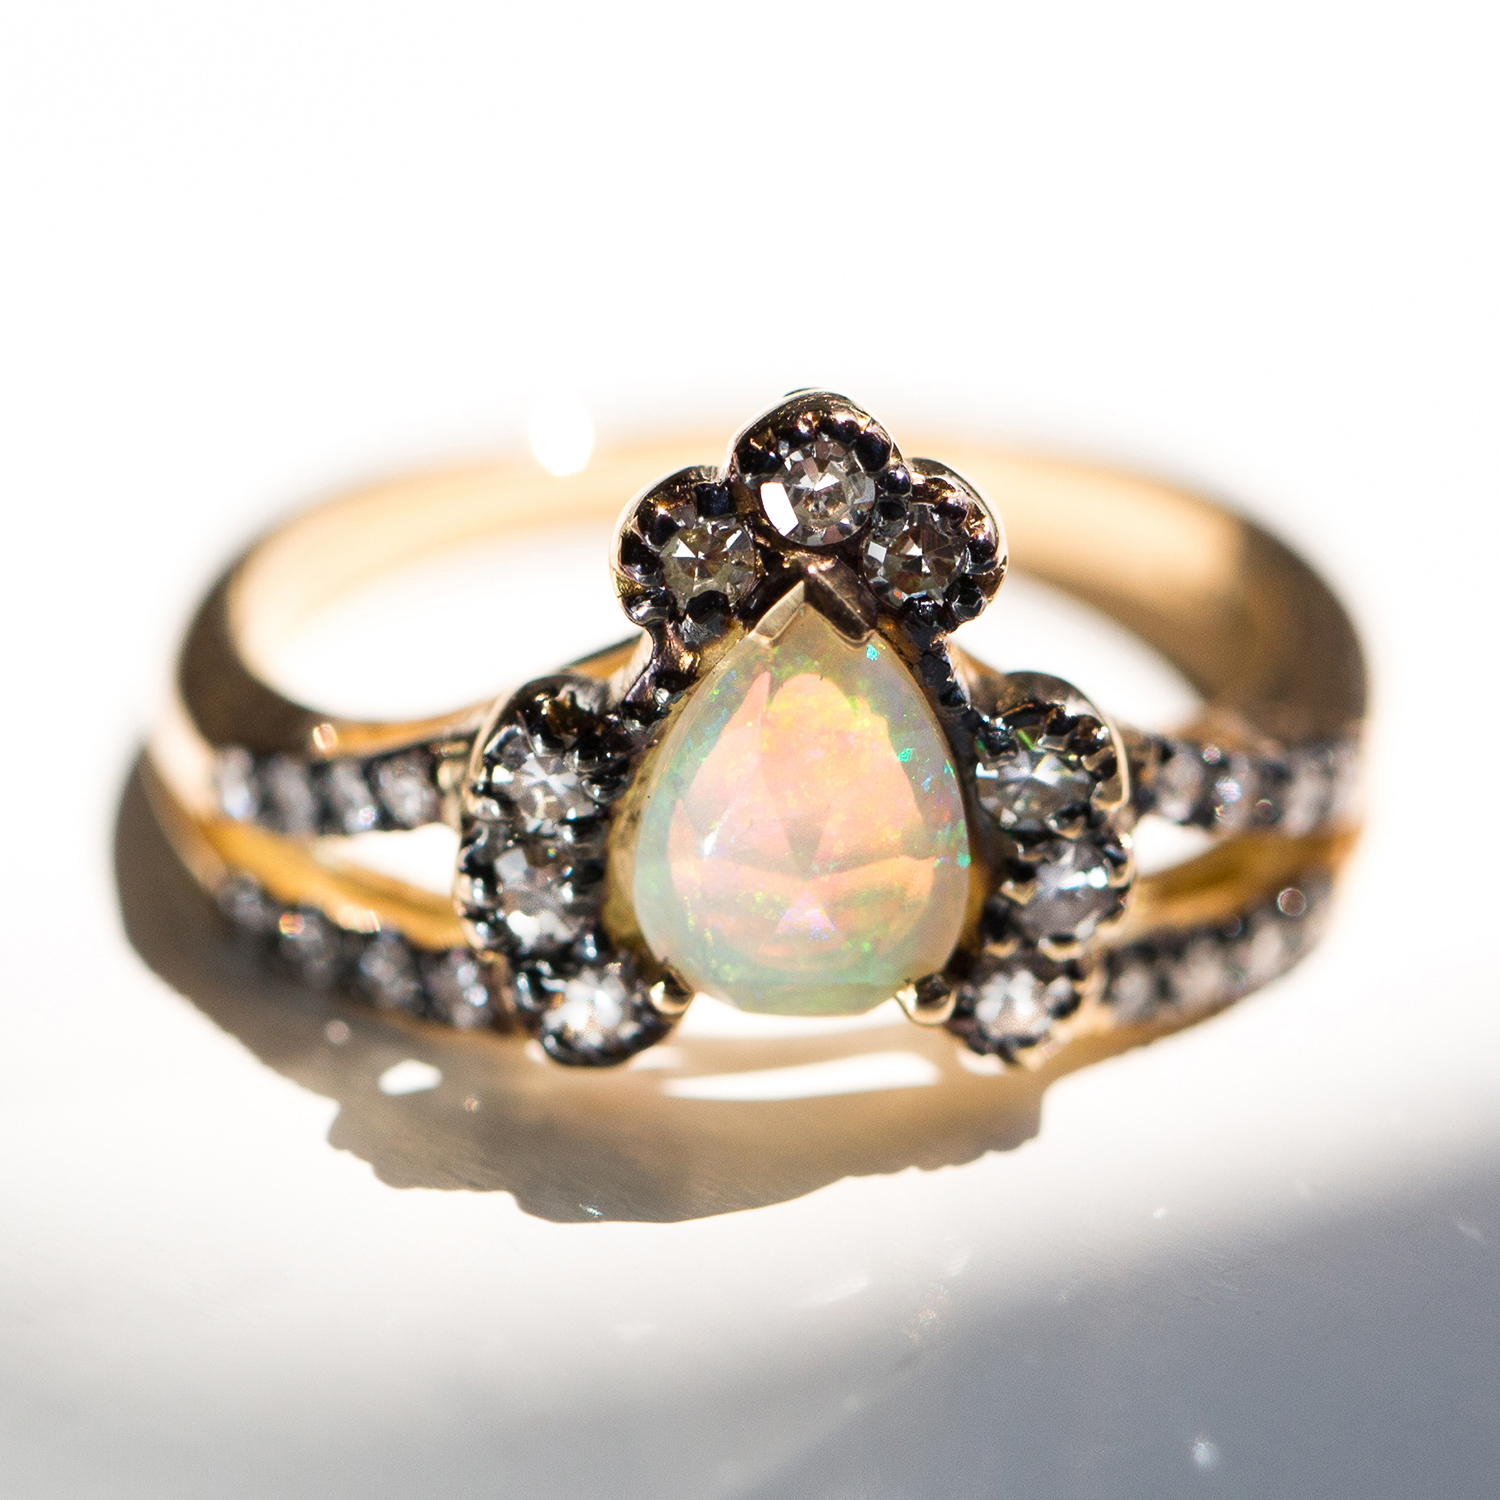 Ritual Solitaire Ring, Opal